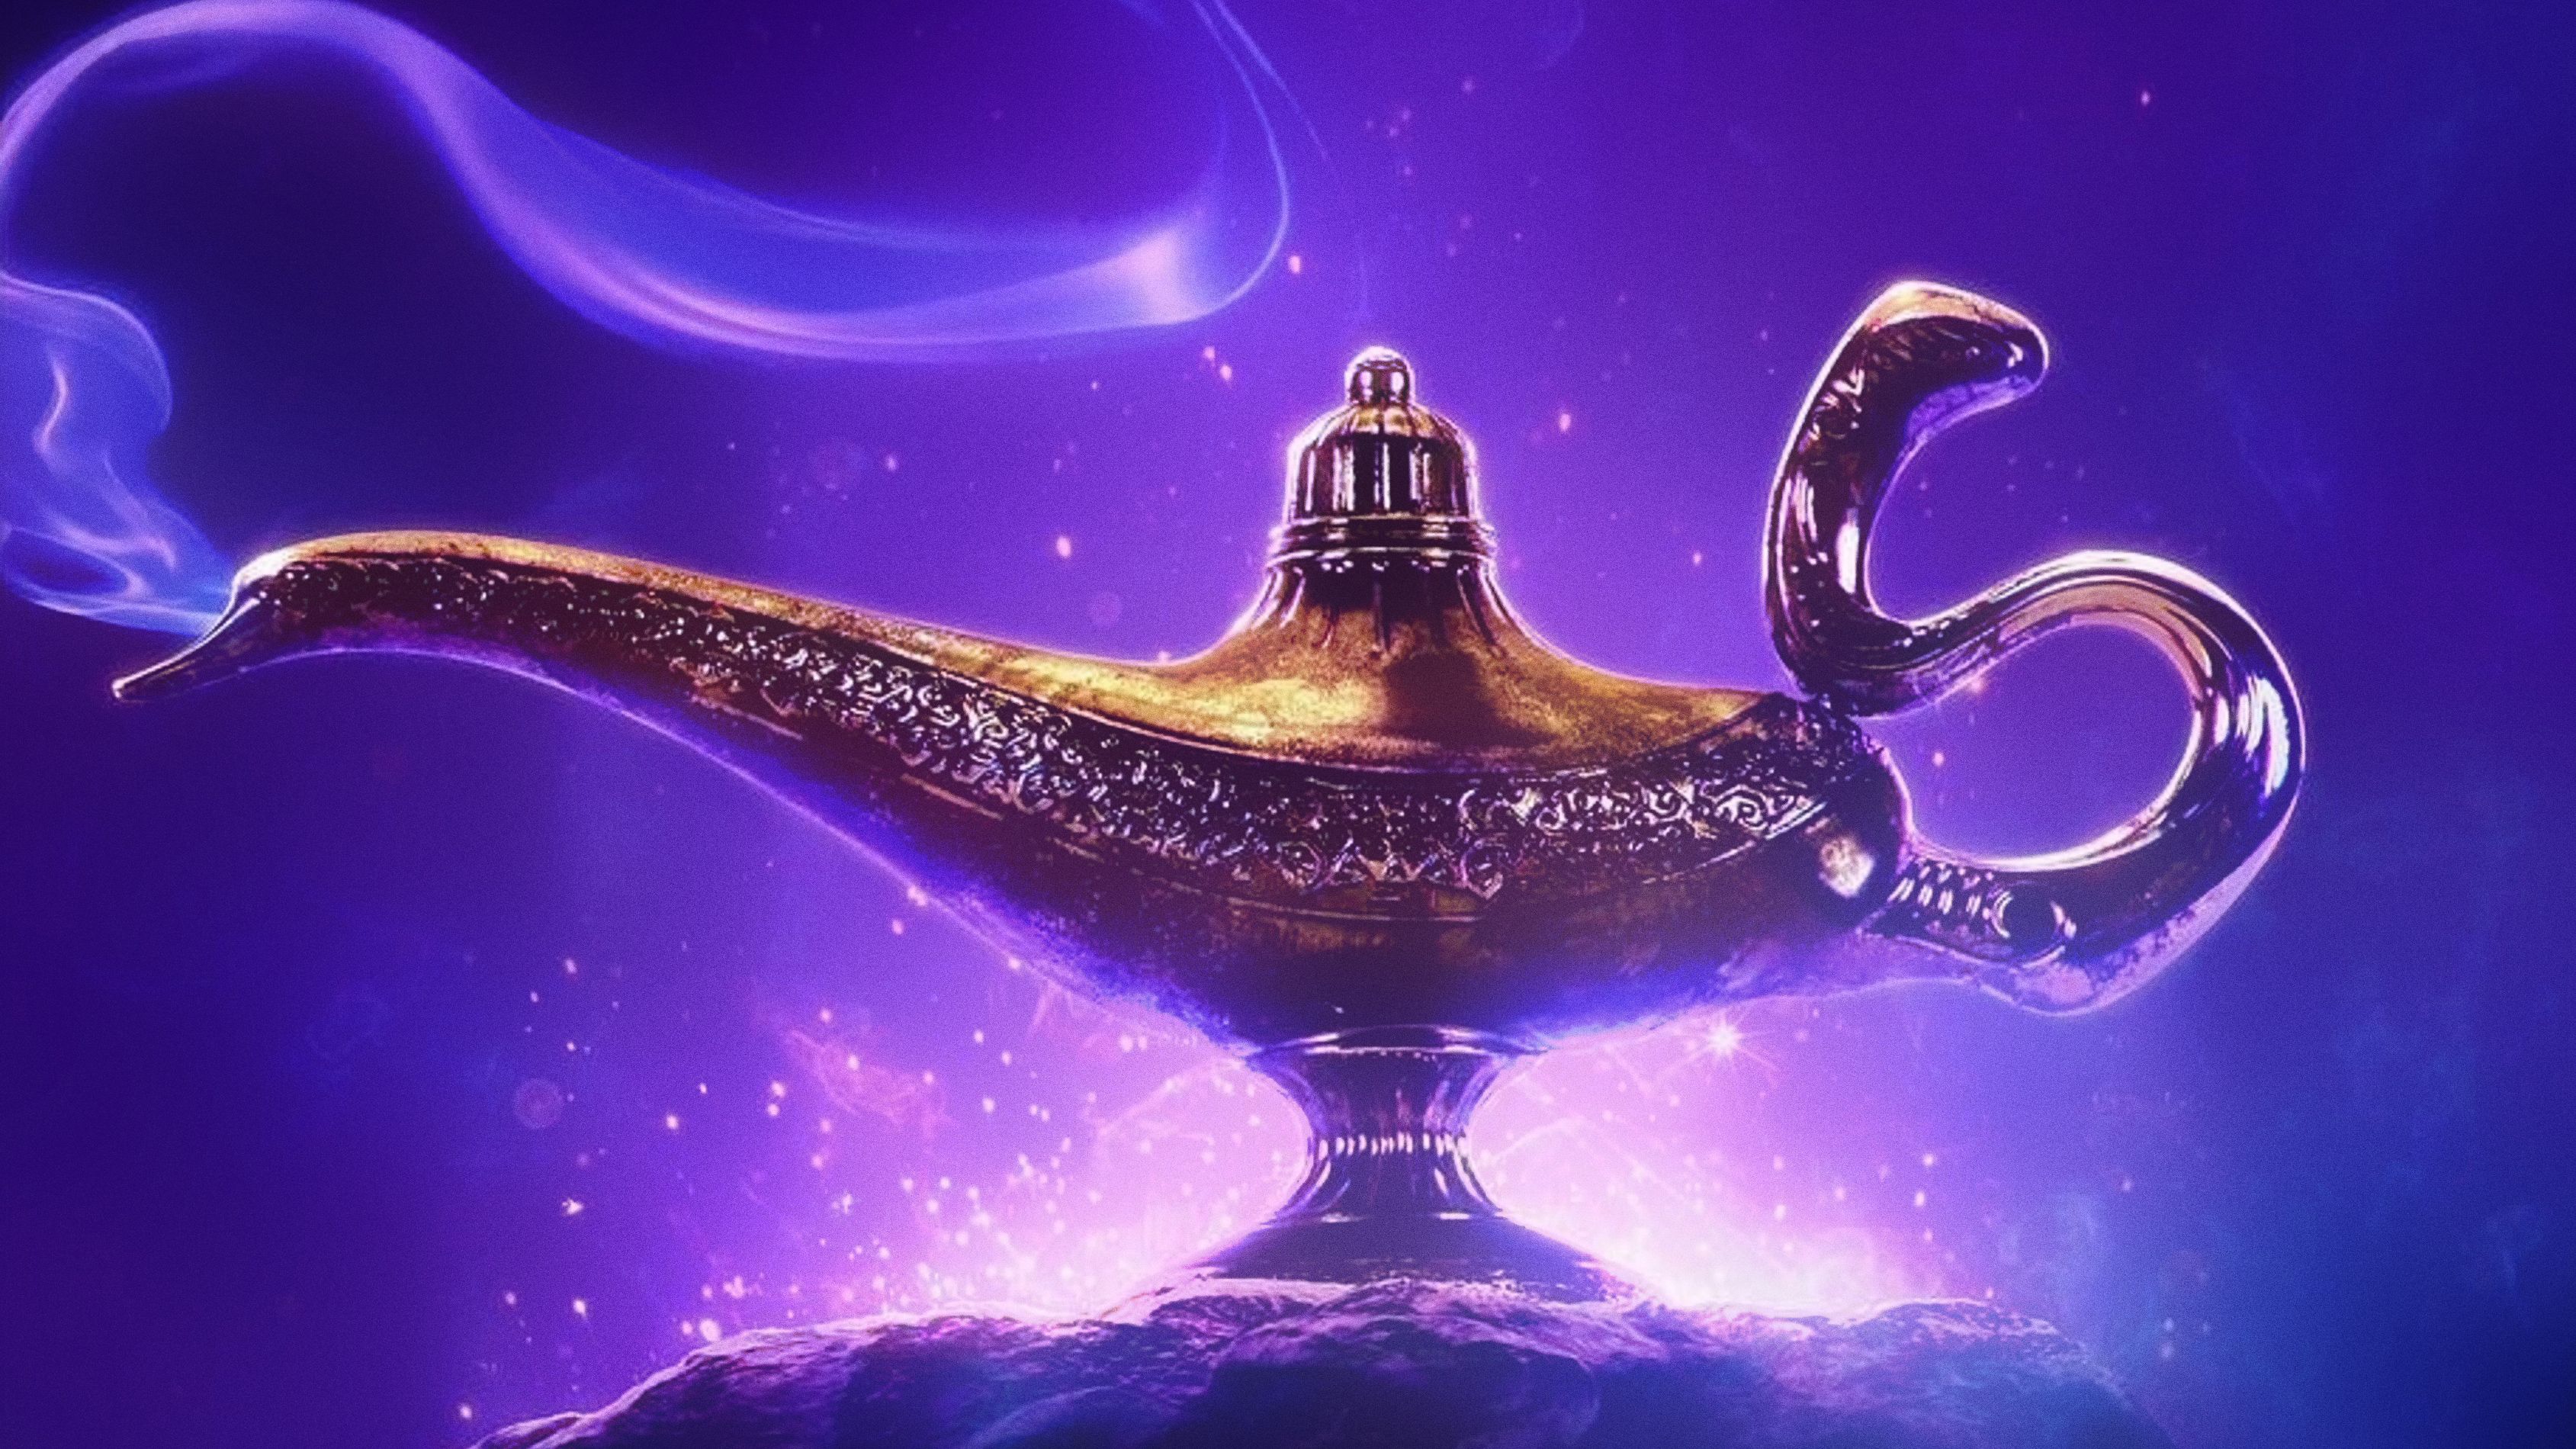 Movie Poster 2019: Aladdin Movie 2019 4k, HD Movies, 4k Wallpapers, Images